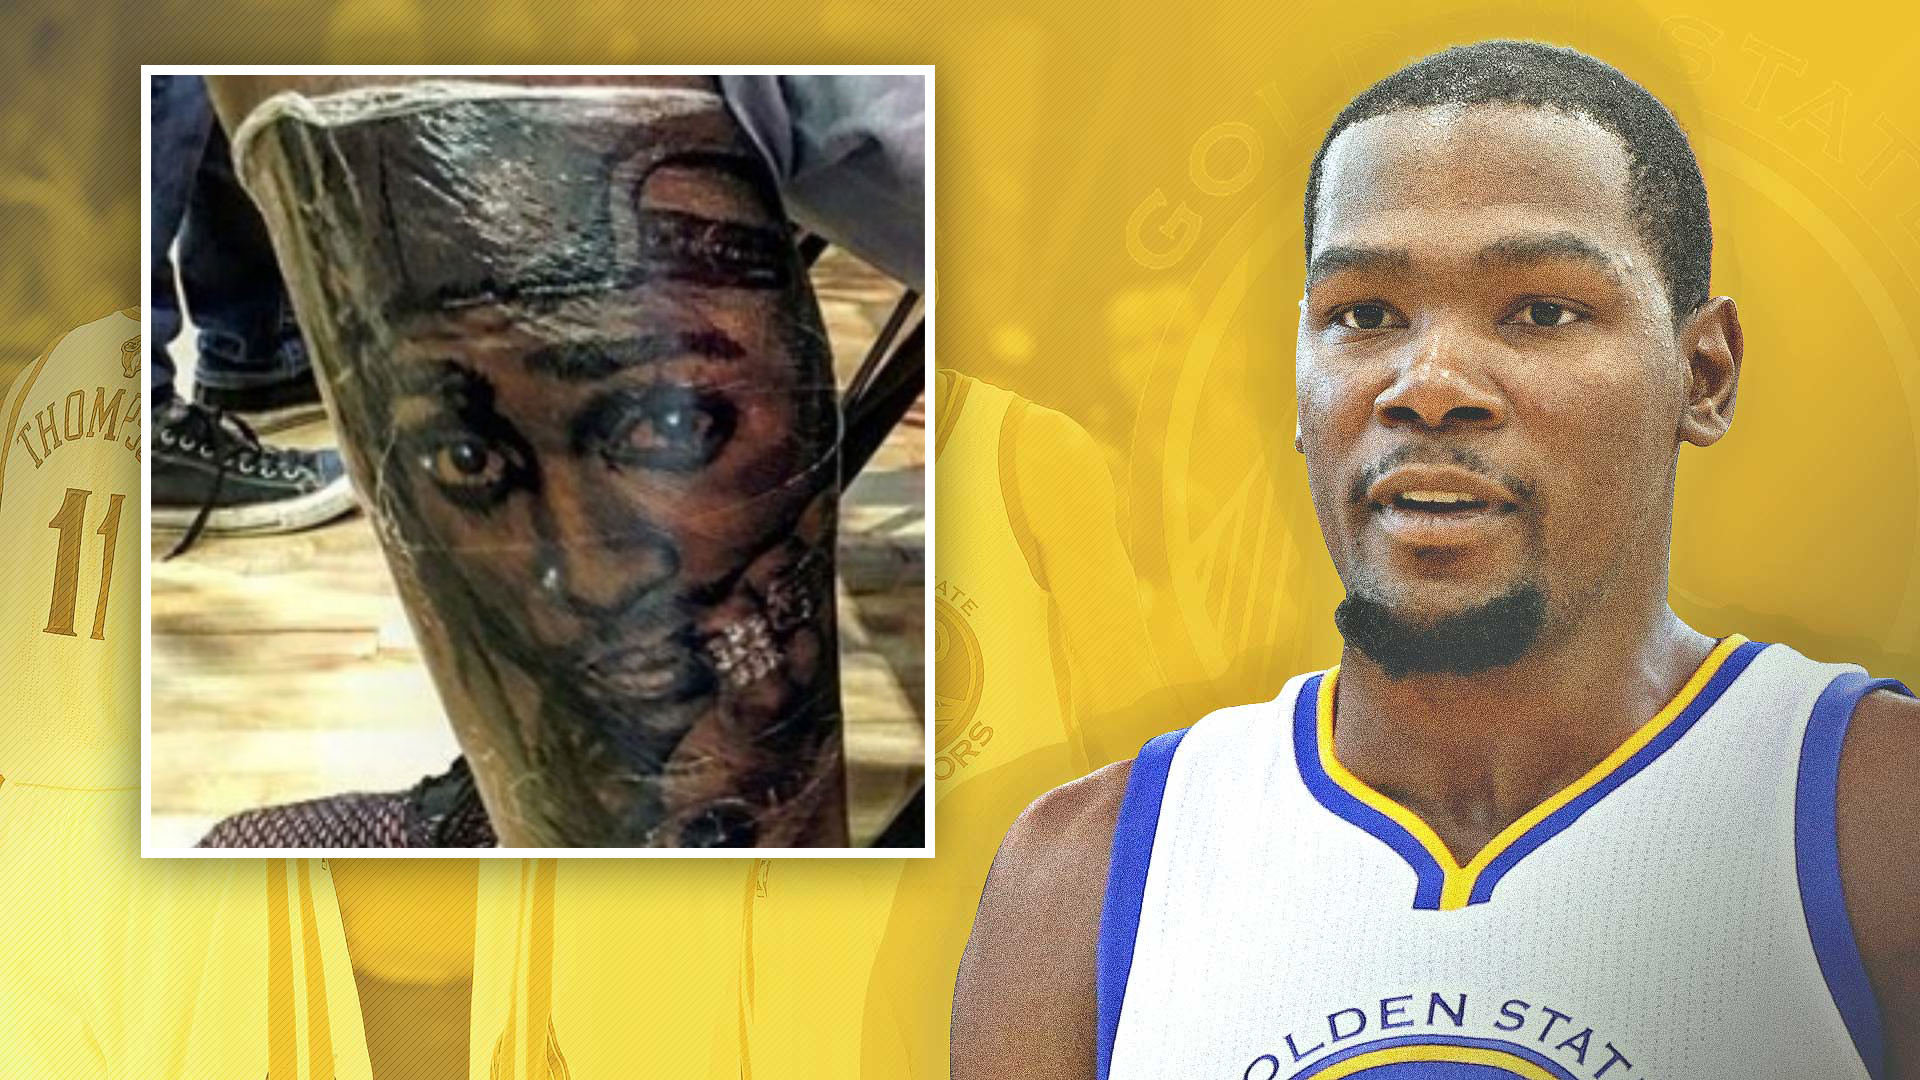 KDurant gets new tattoo of Tupac Shakur